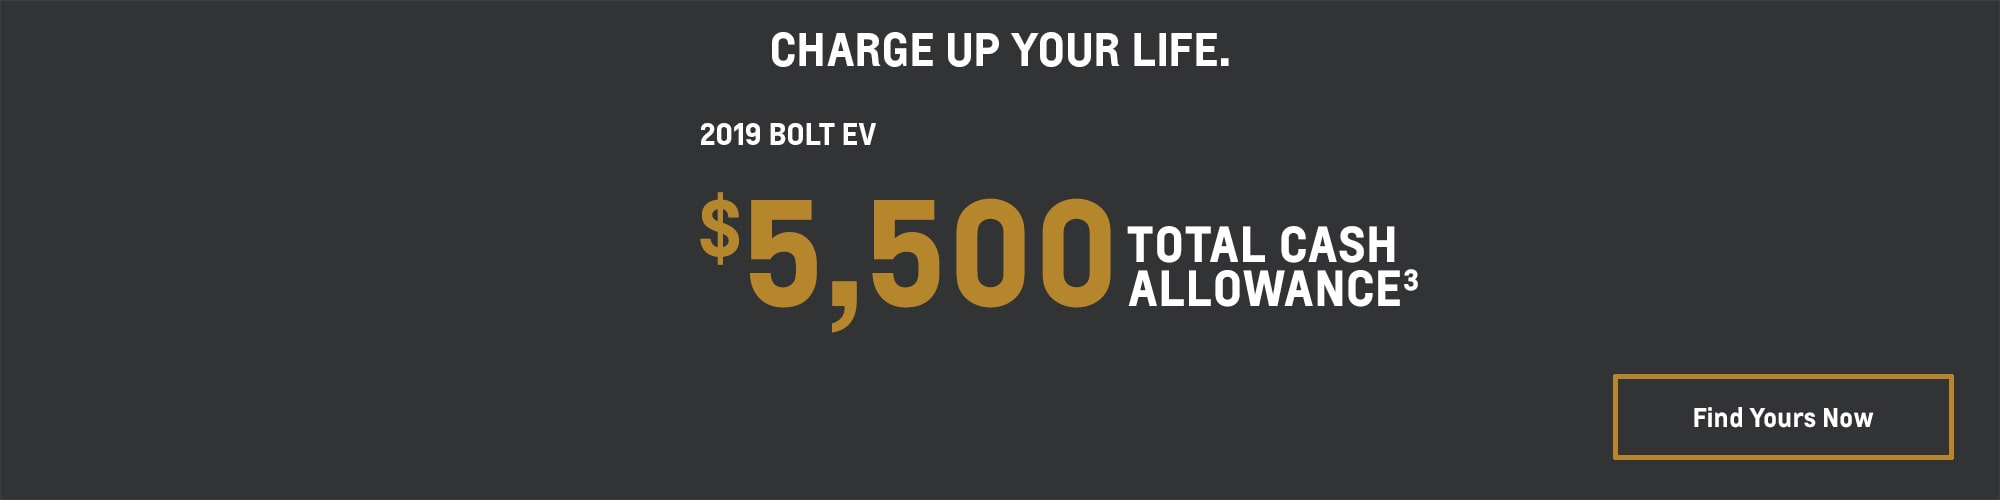 2019 Bolt EV: 16% Below MSRP